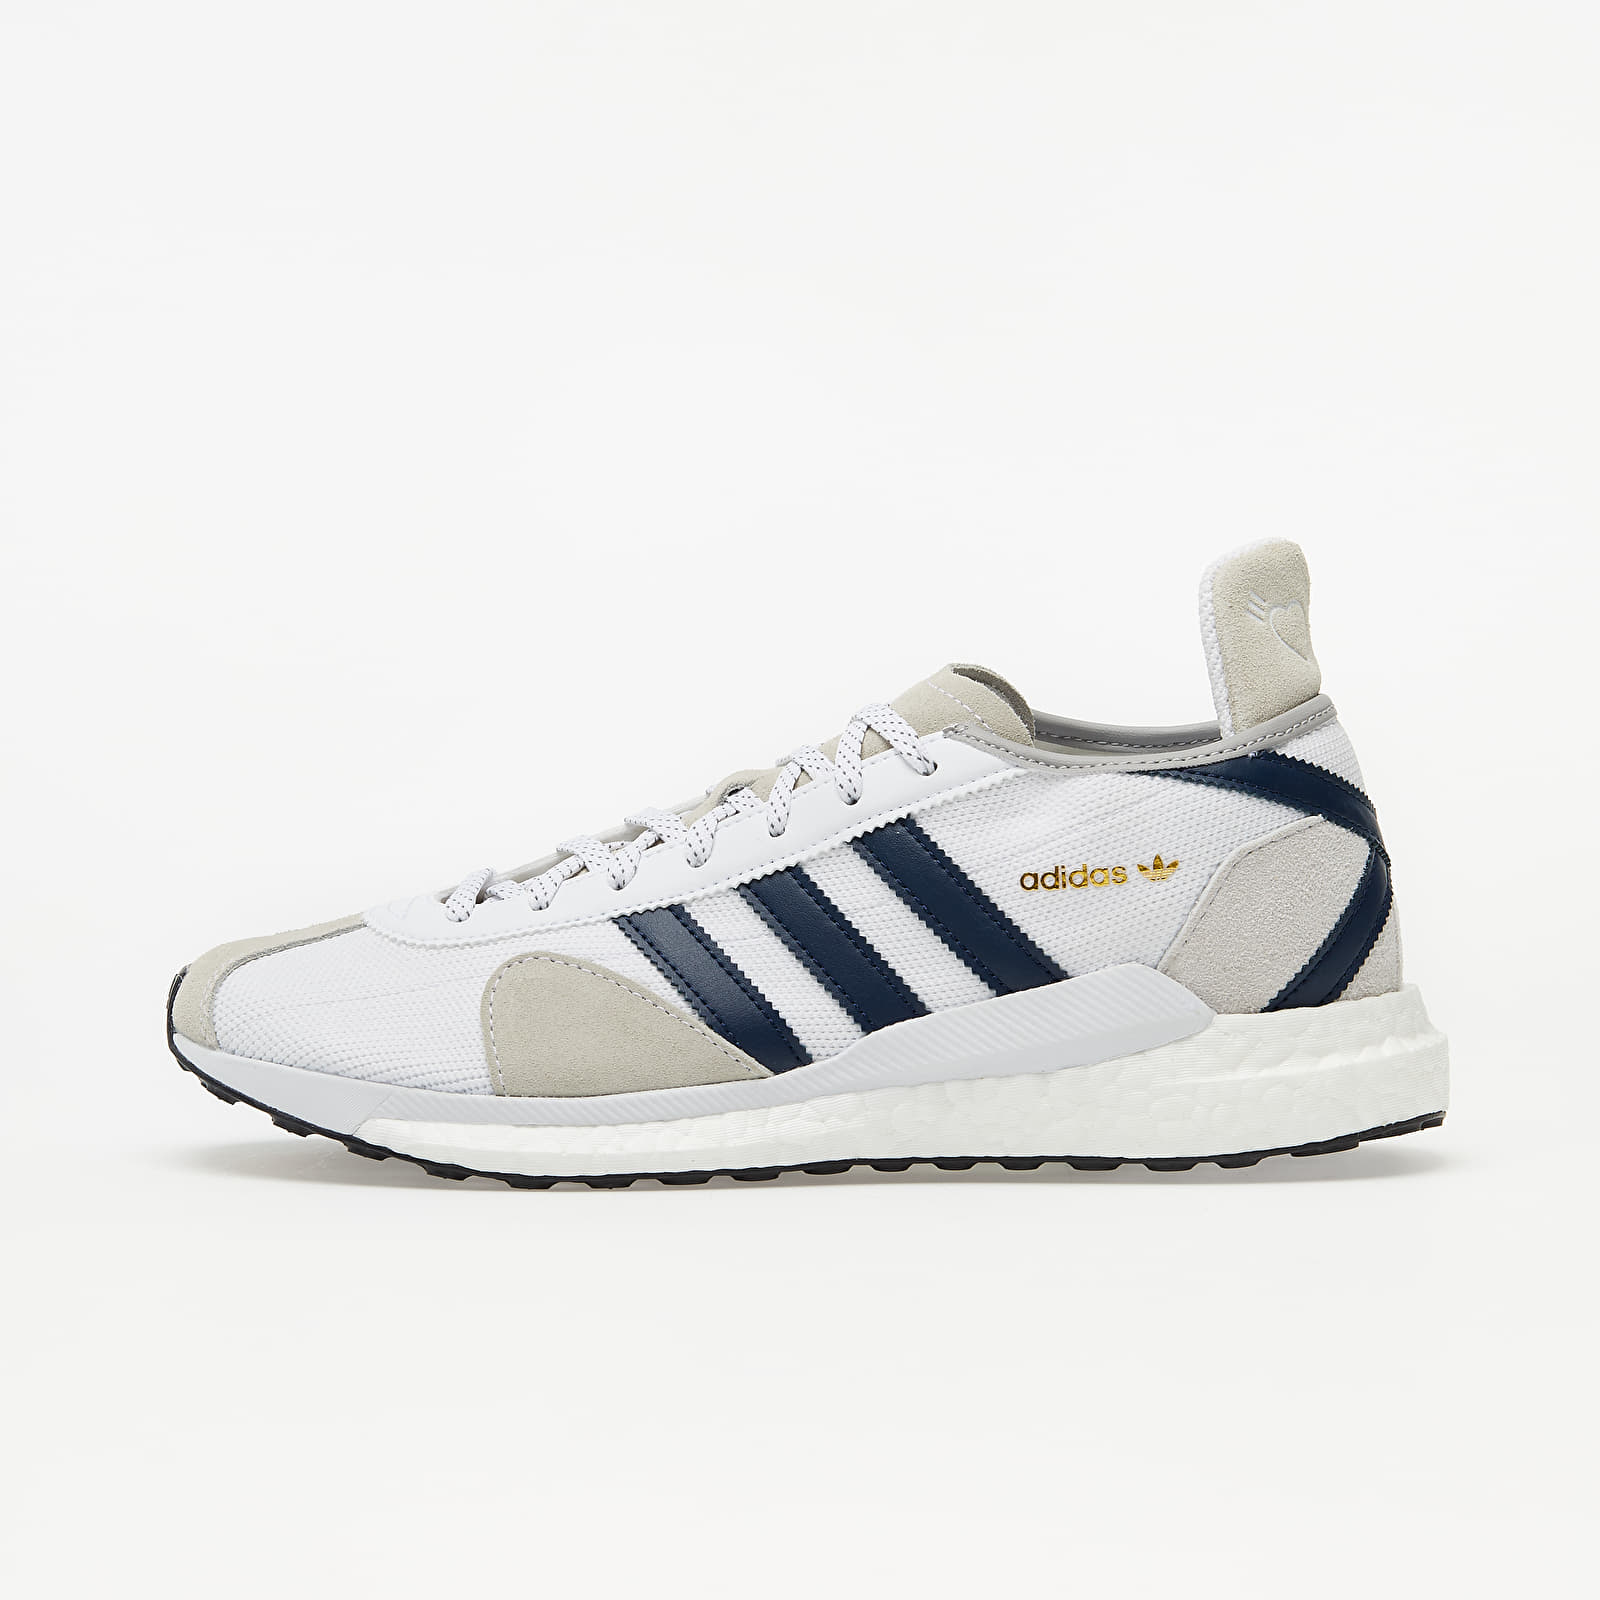 adidas Tokio Solar Human Made Ftwr White/ Collegiate Navy/ Core Black FZ0551